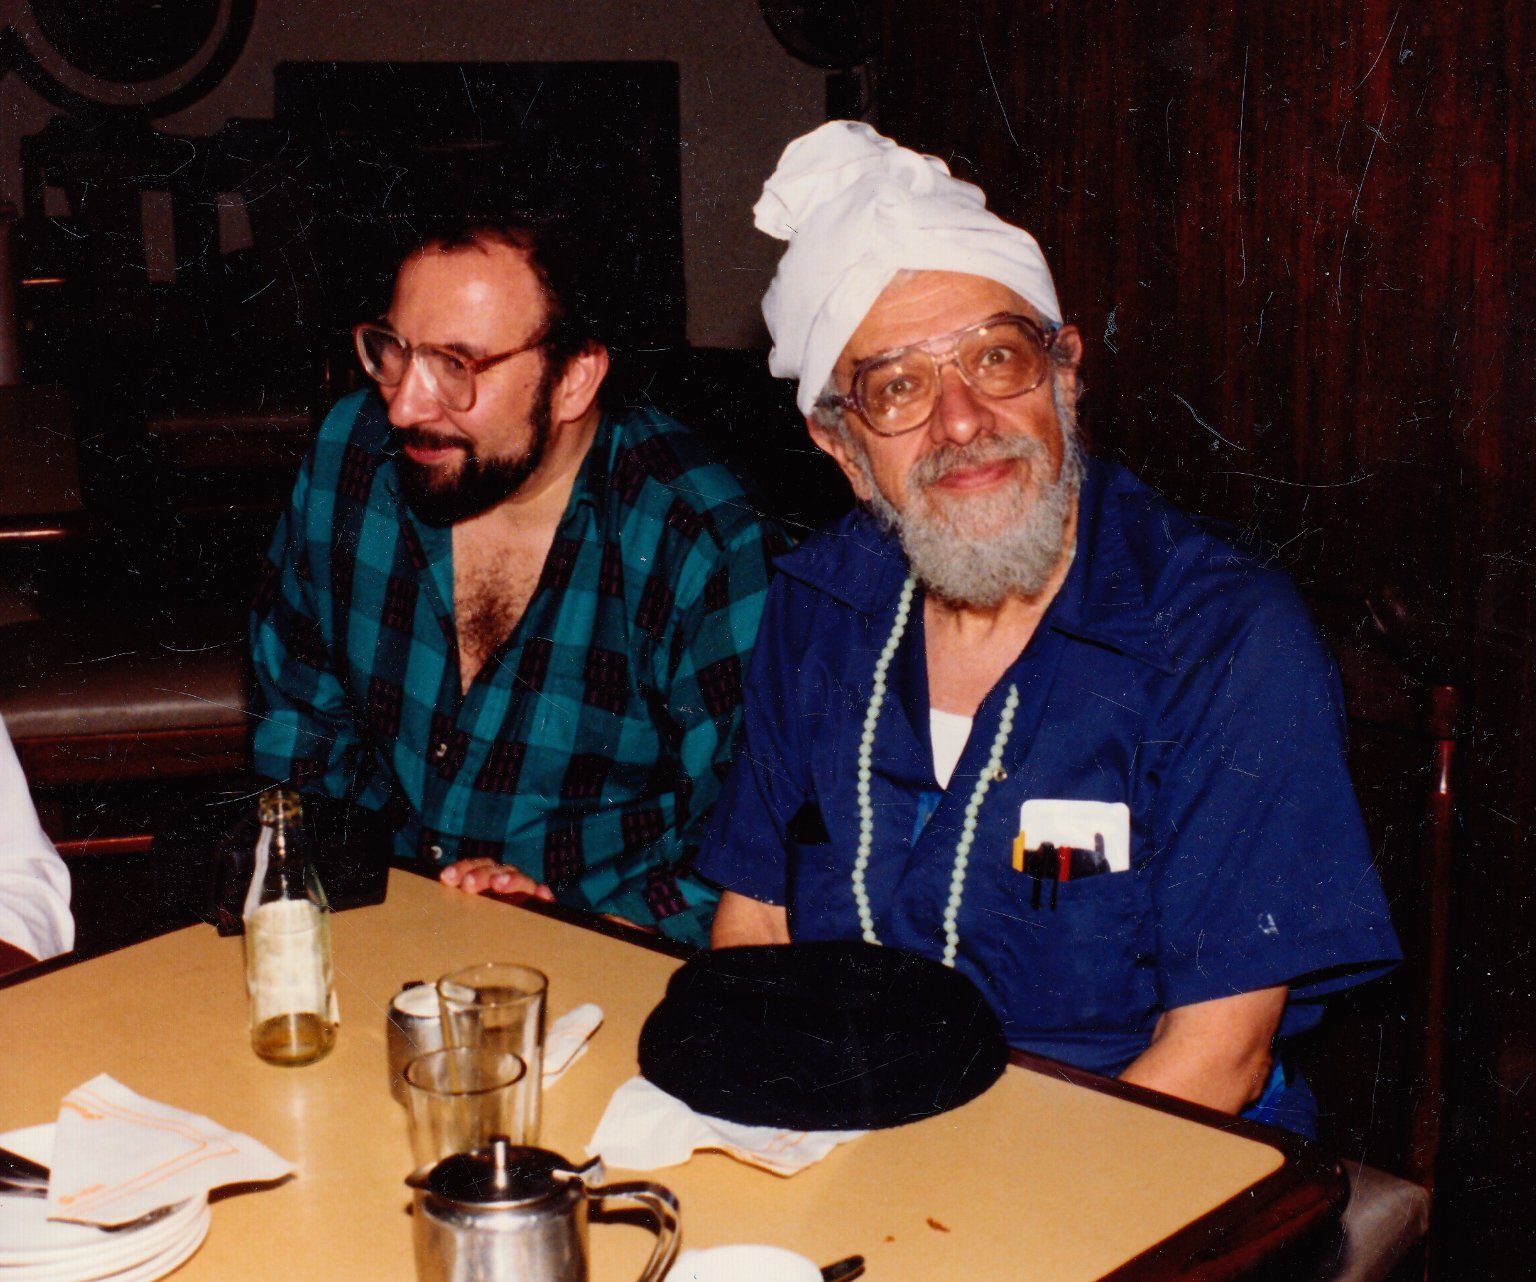 Participants in the 'Jew in the Lotus' Dialogues, October 22, 1990.